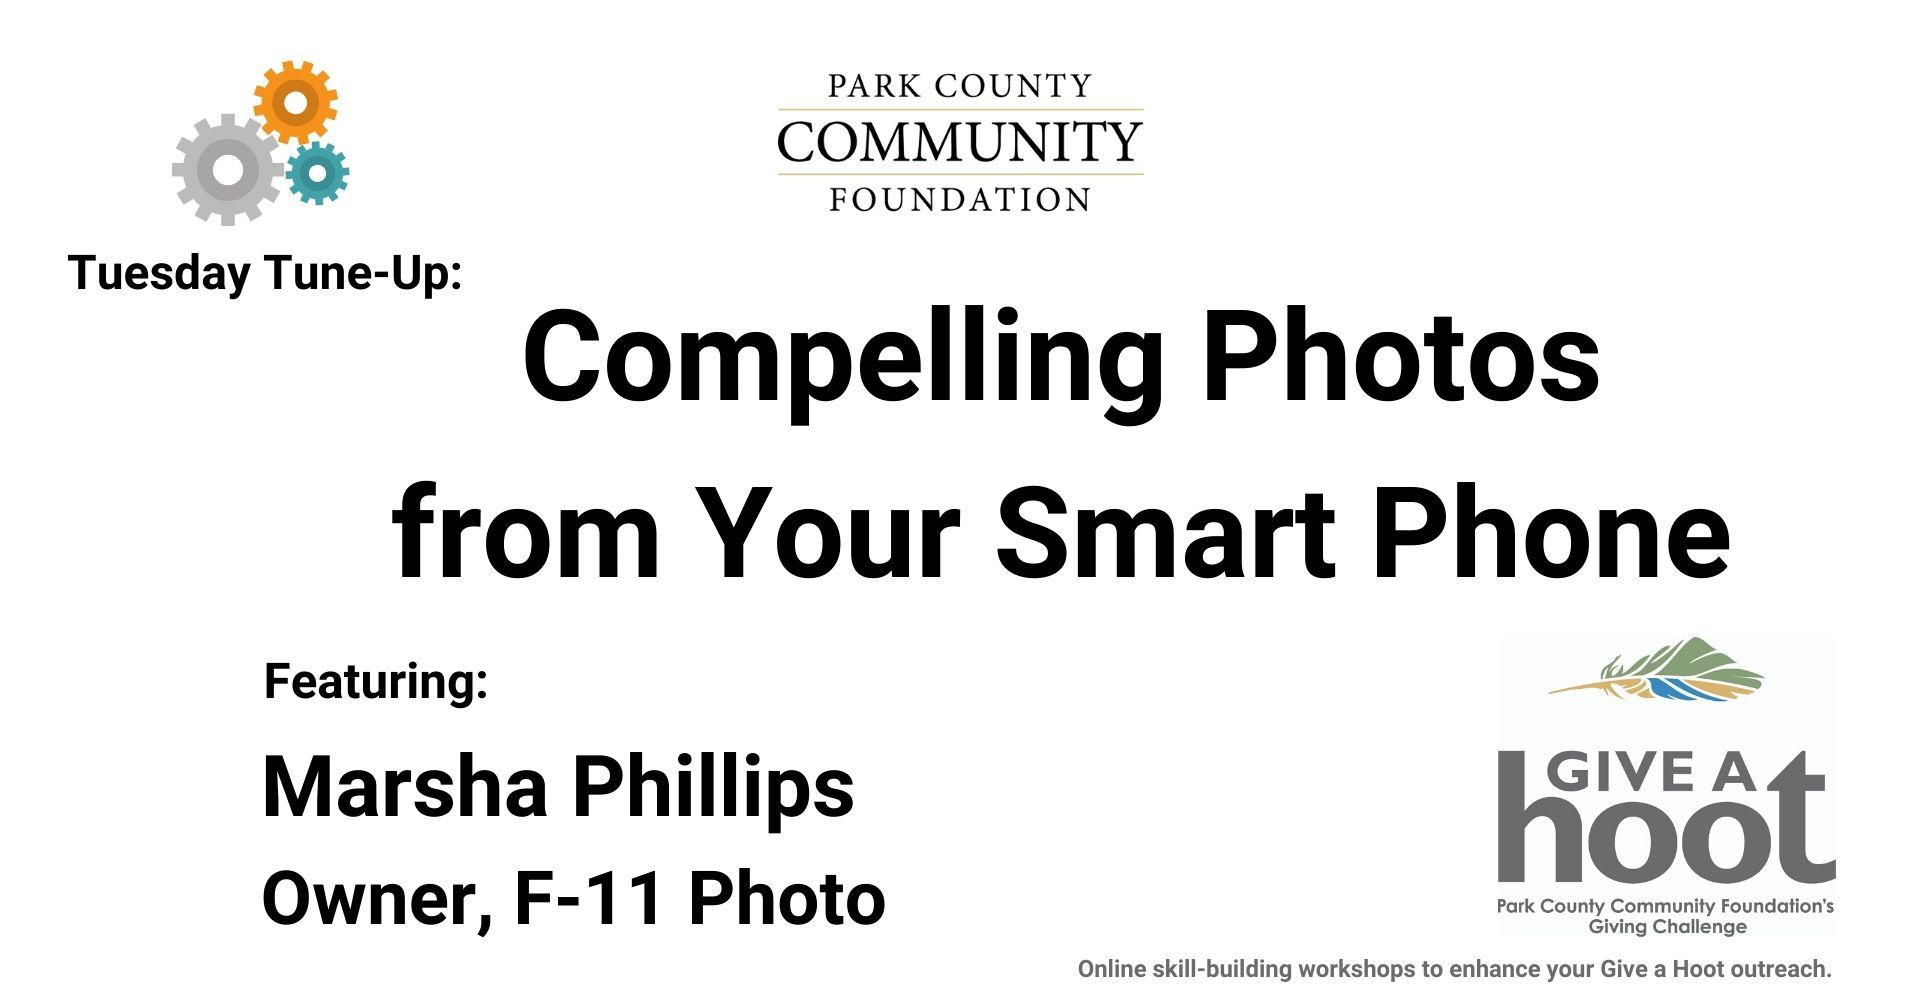 Compelling Photos from Your Smart Phone: June 16, 2020